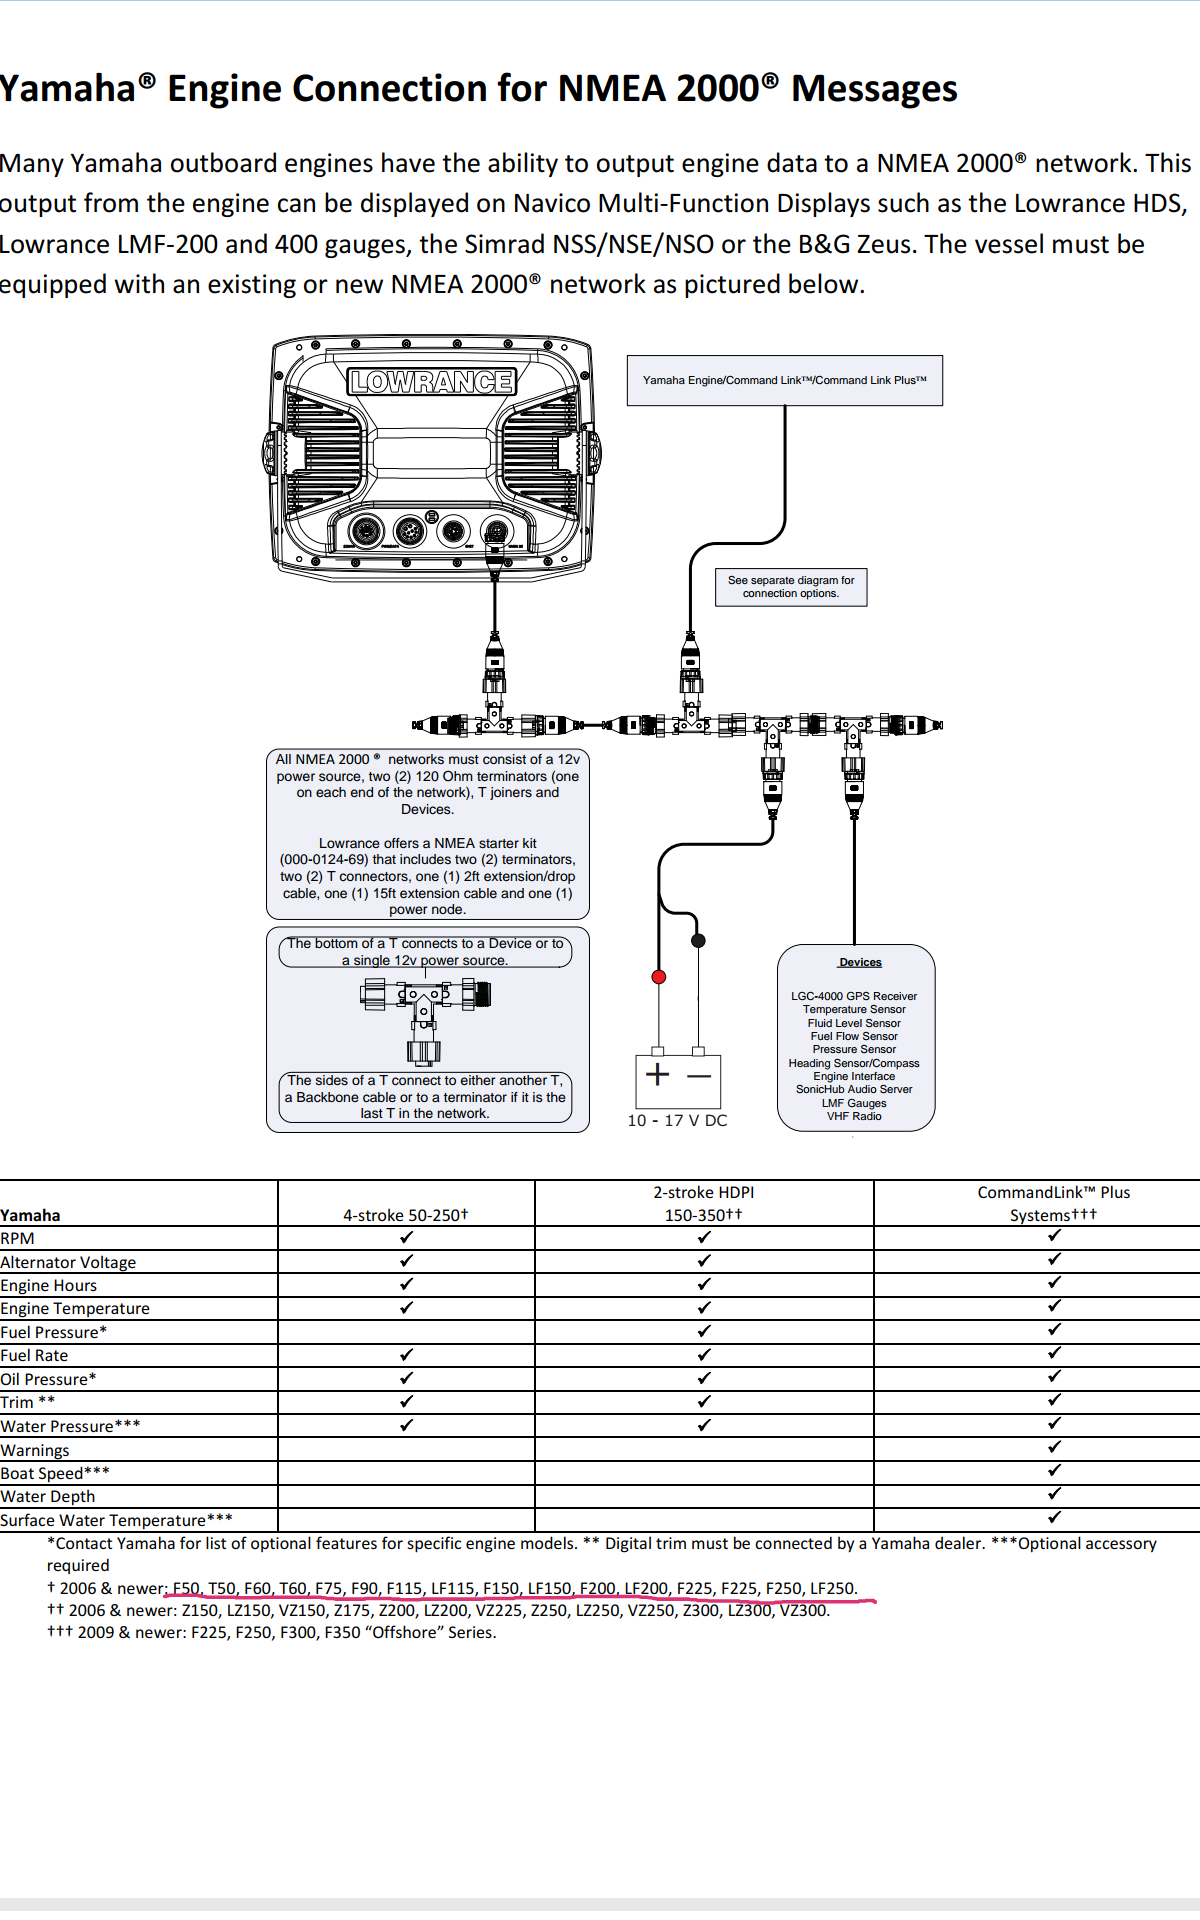 Garmin Fuel Wiring Diagram Electrical Diagrams Nmea 2000 Dual Outboards Diy Enthusiasts Simrad